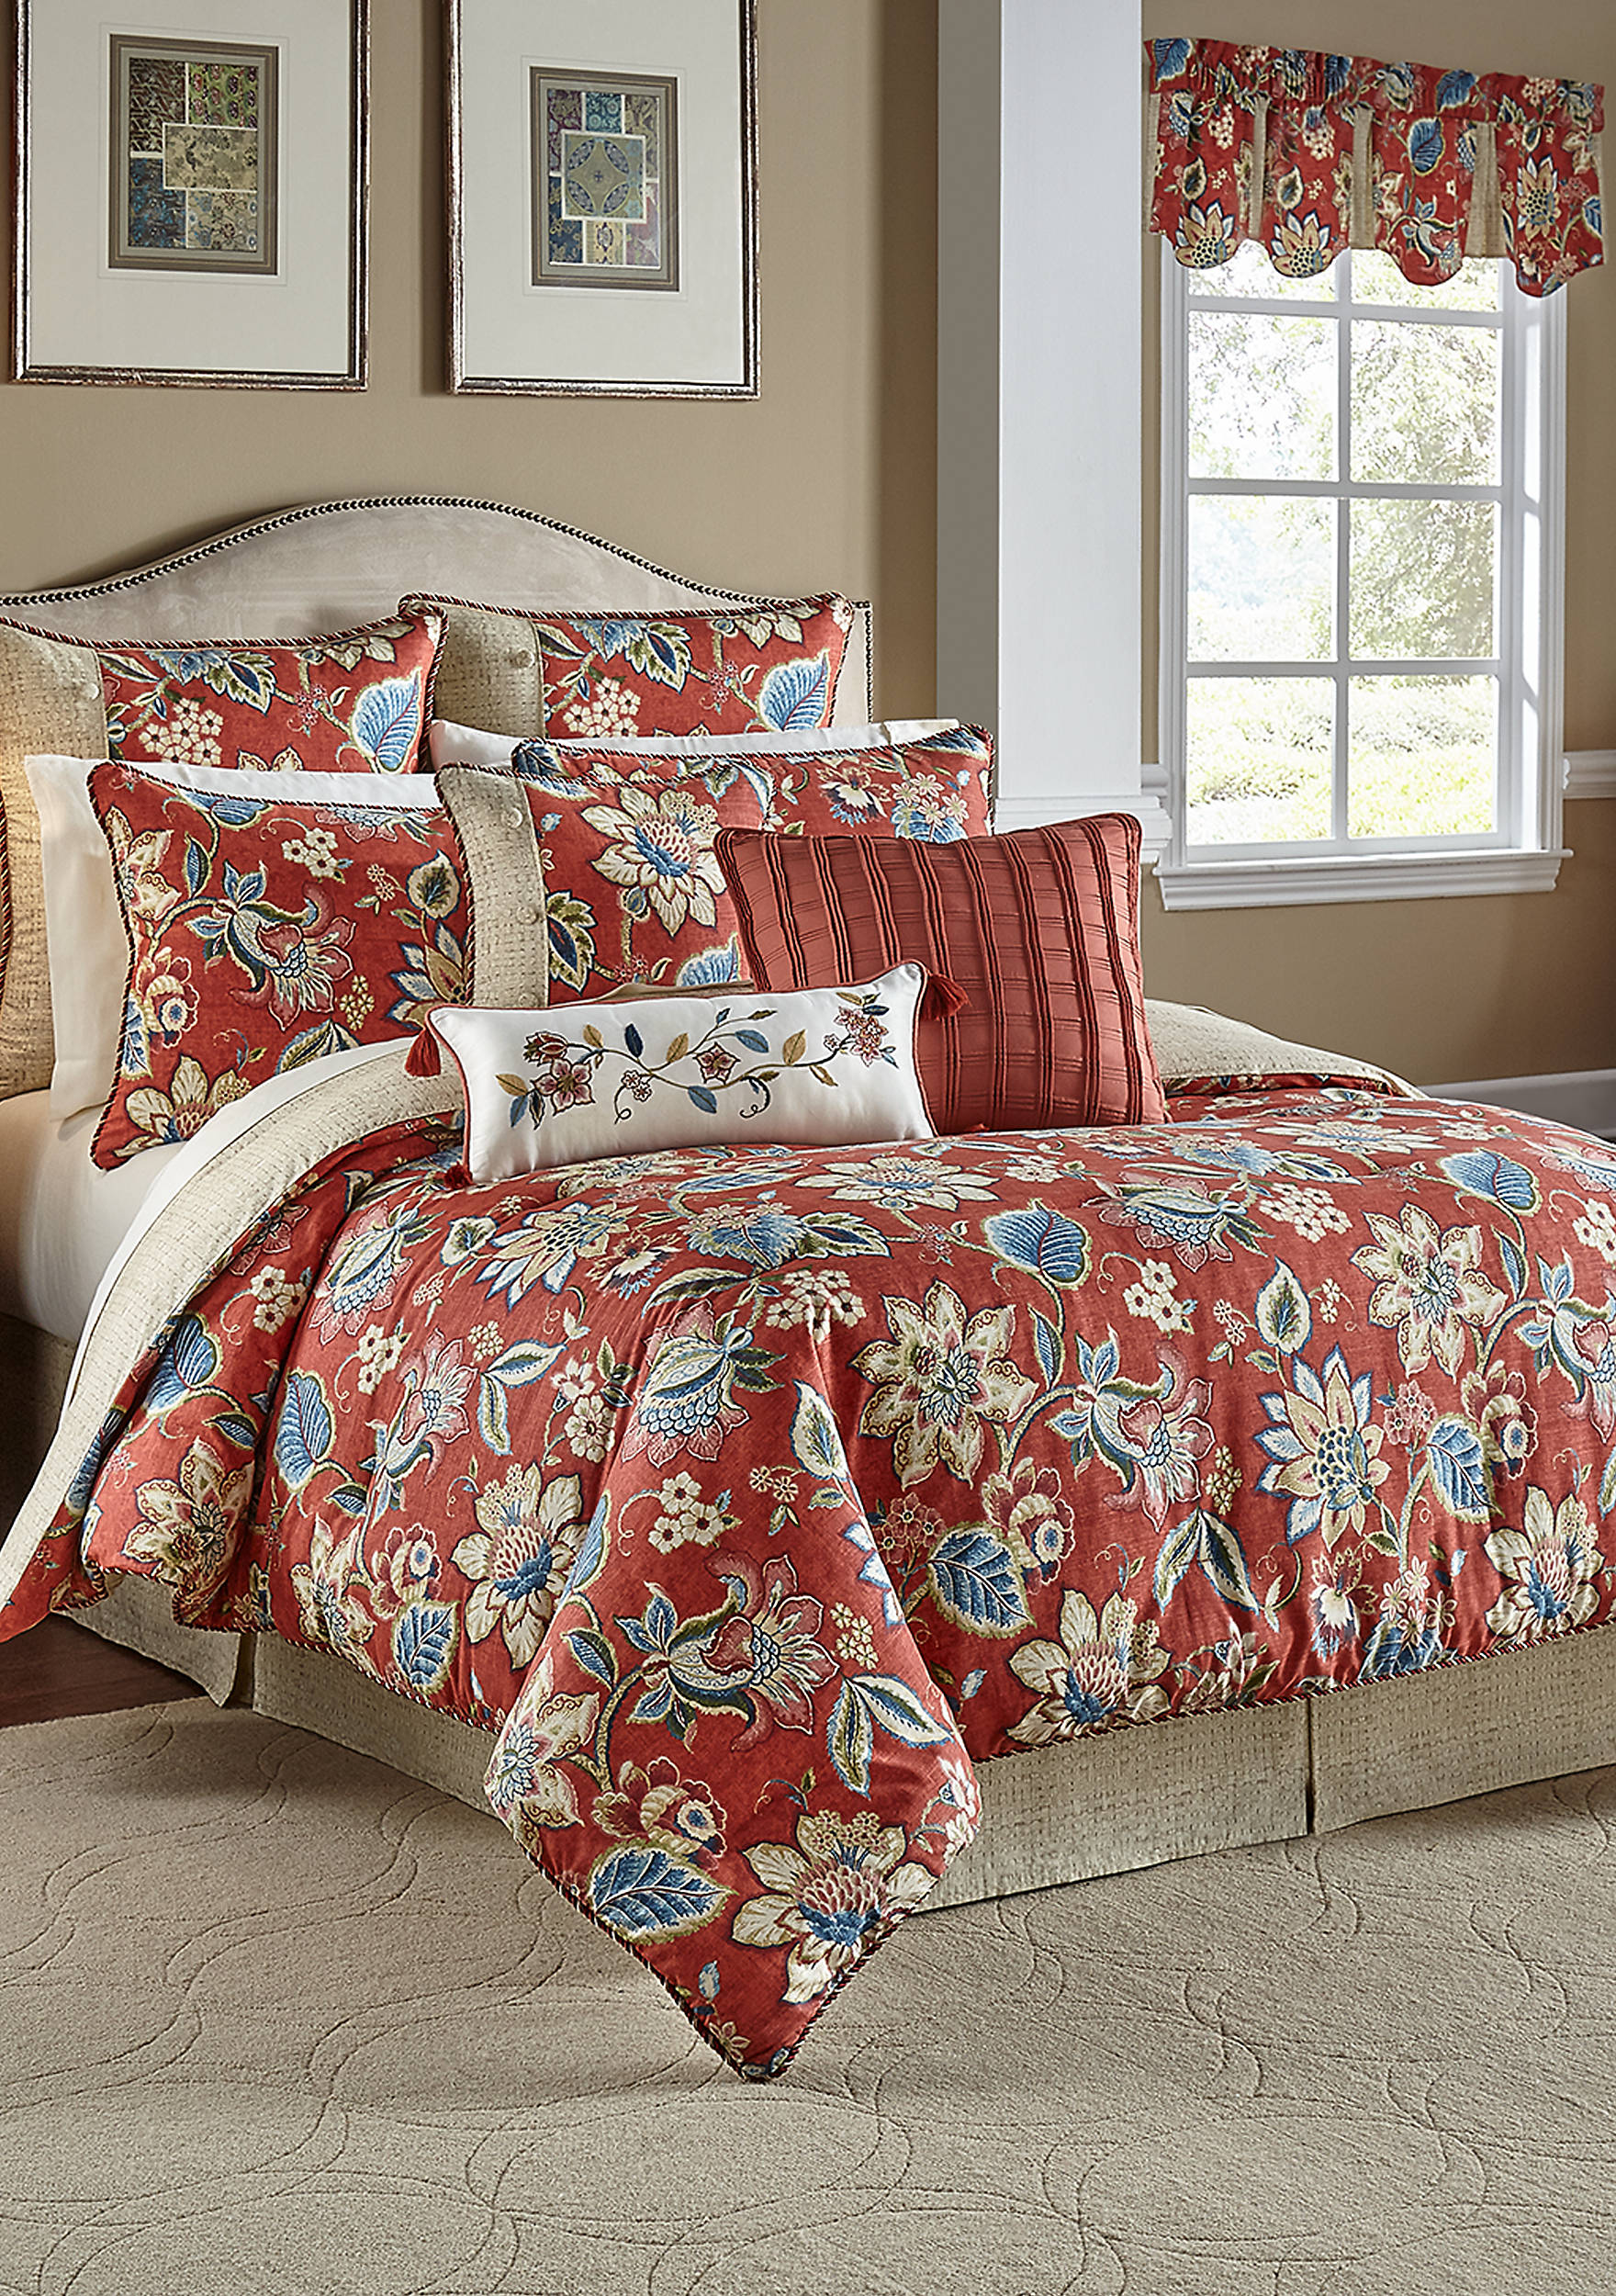 lyon overstock free bedding camuto set vince brushstroke two tone today comforter shipping bath product